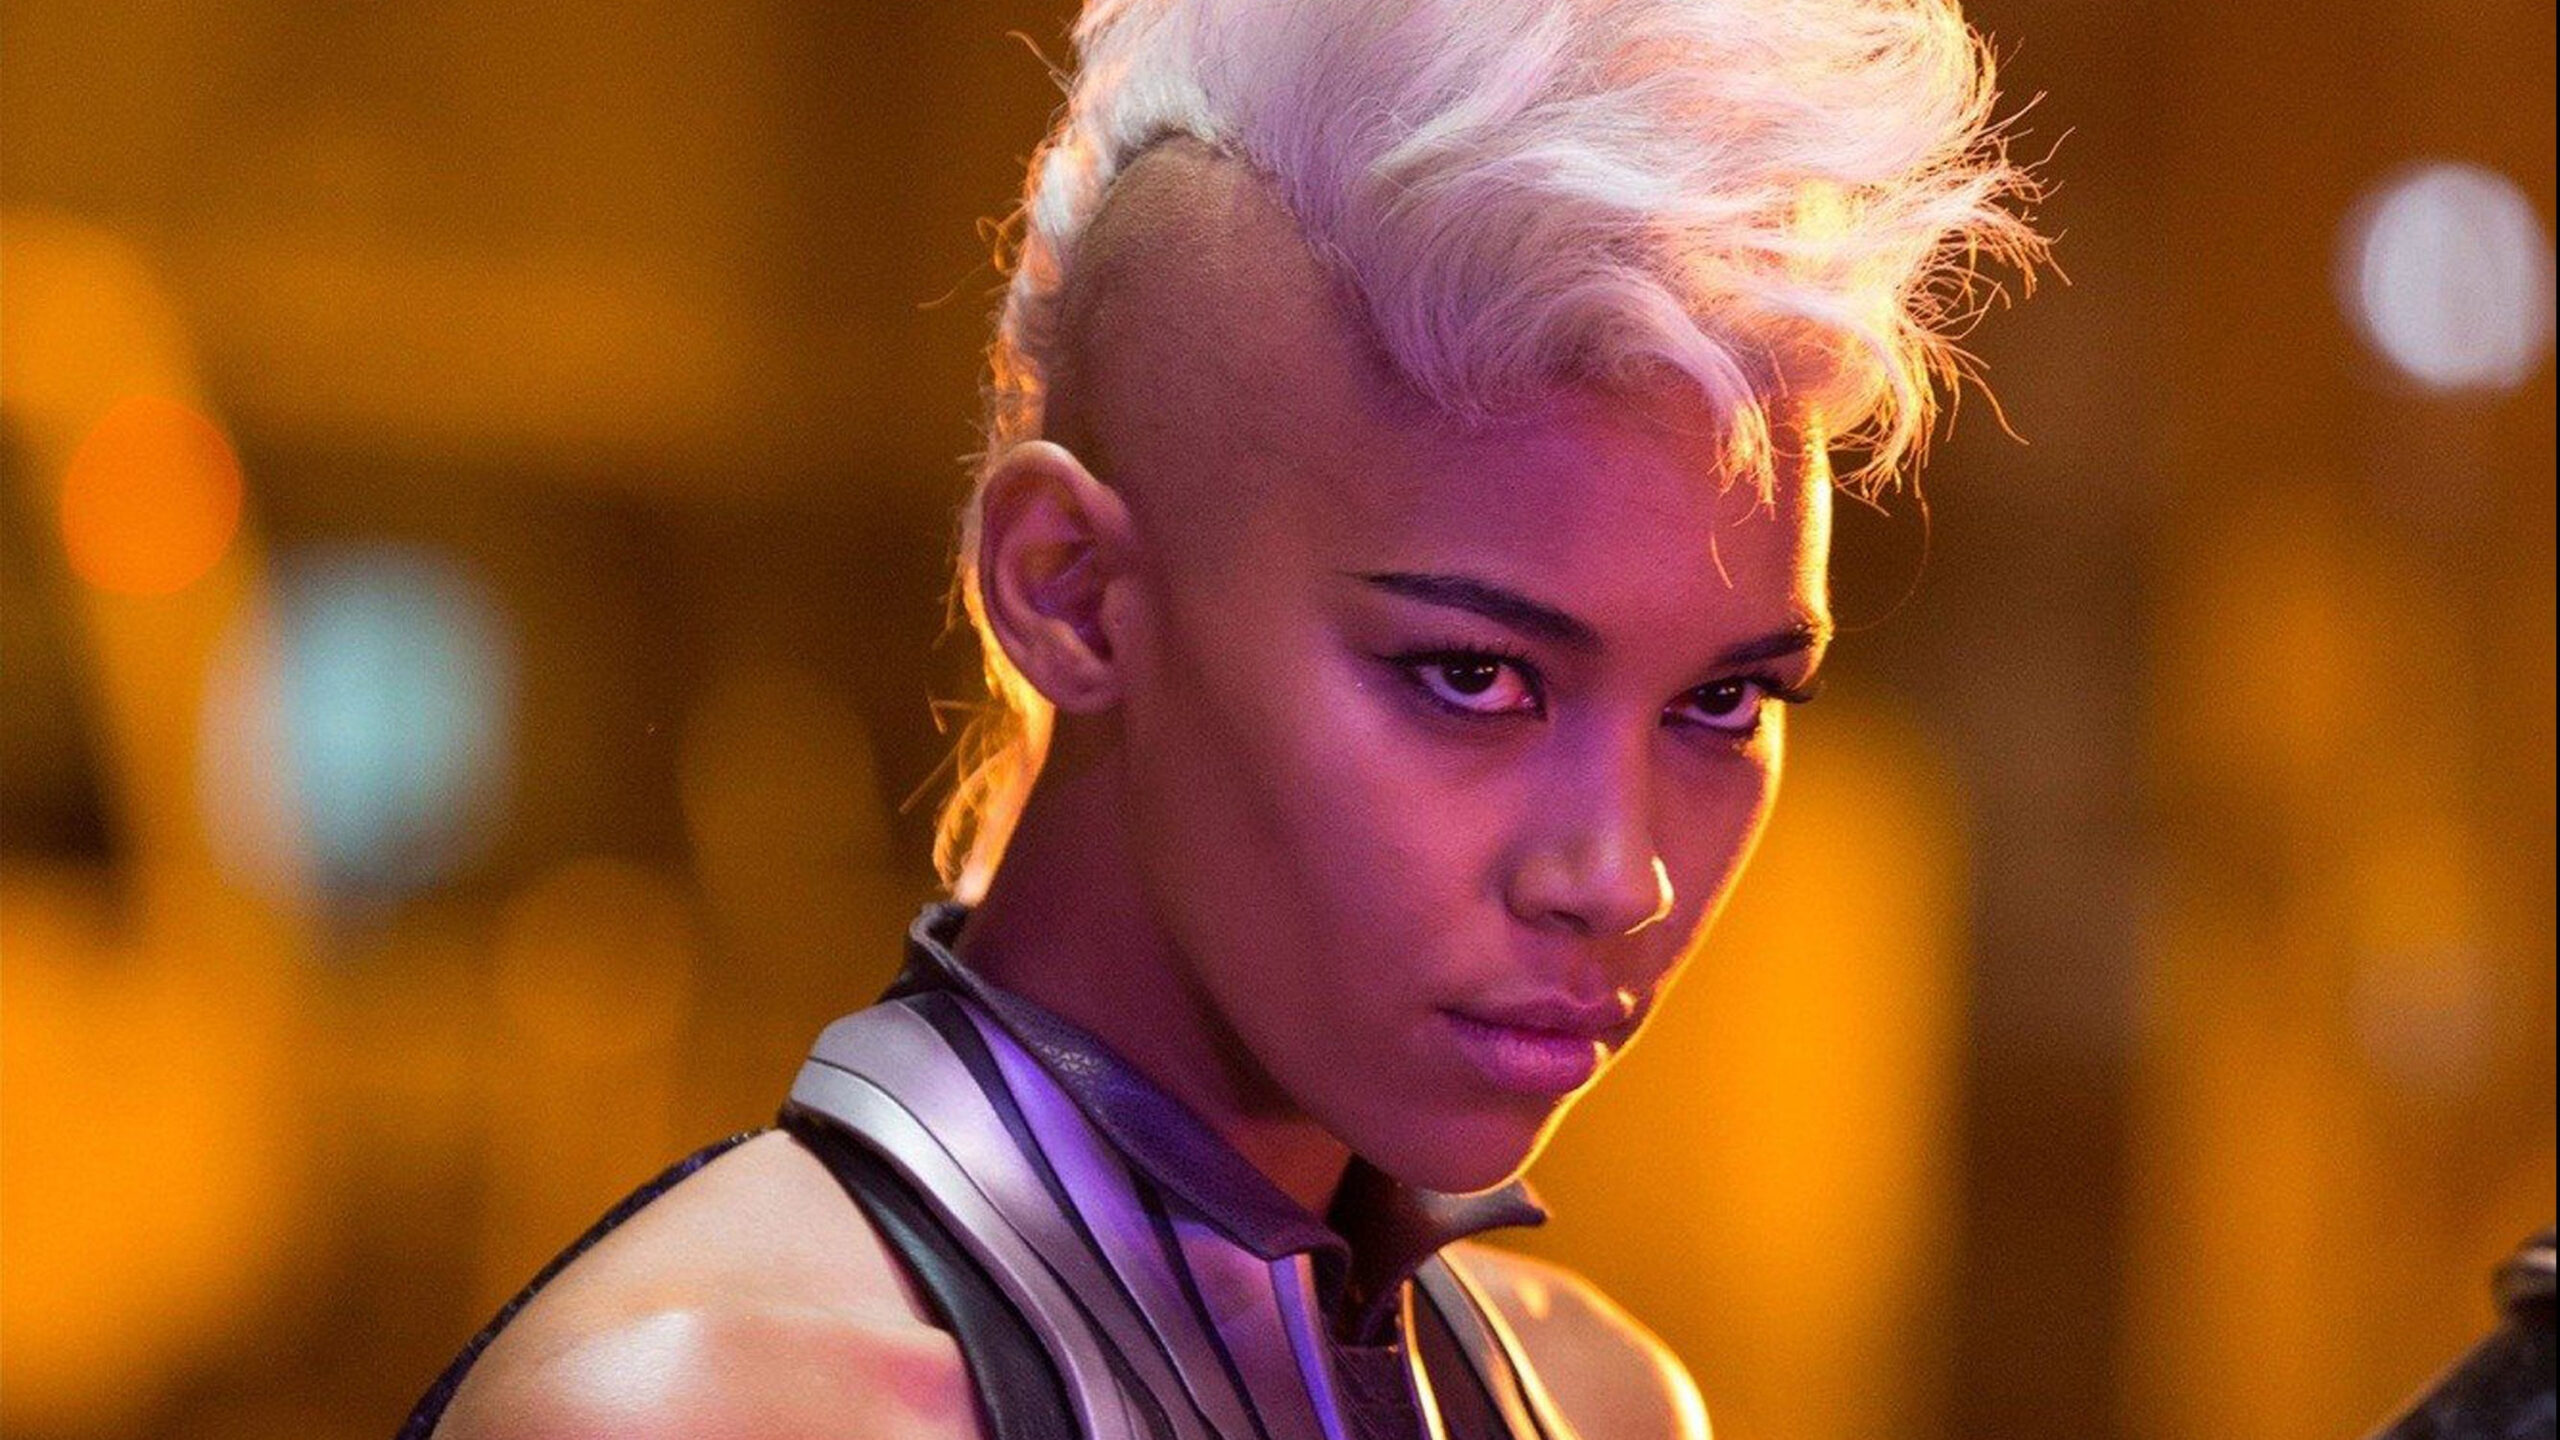 Exclusive: X-Men's Storm Getting A Solo Spinoff From Marvel